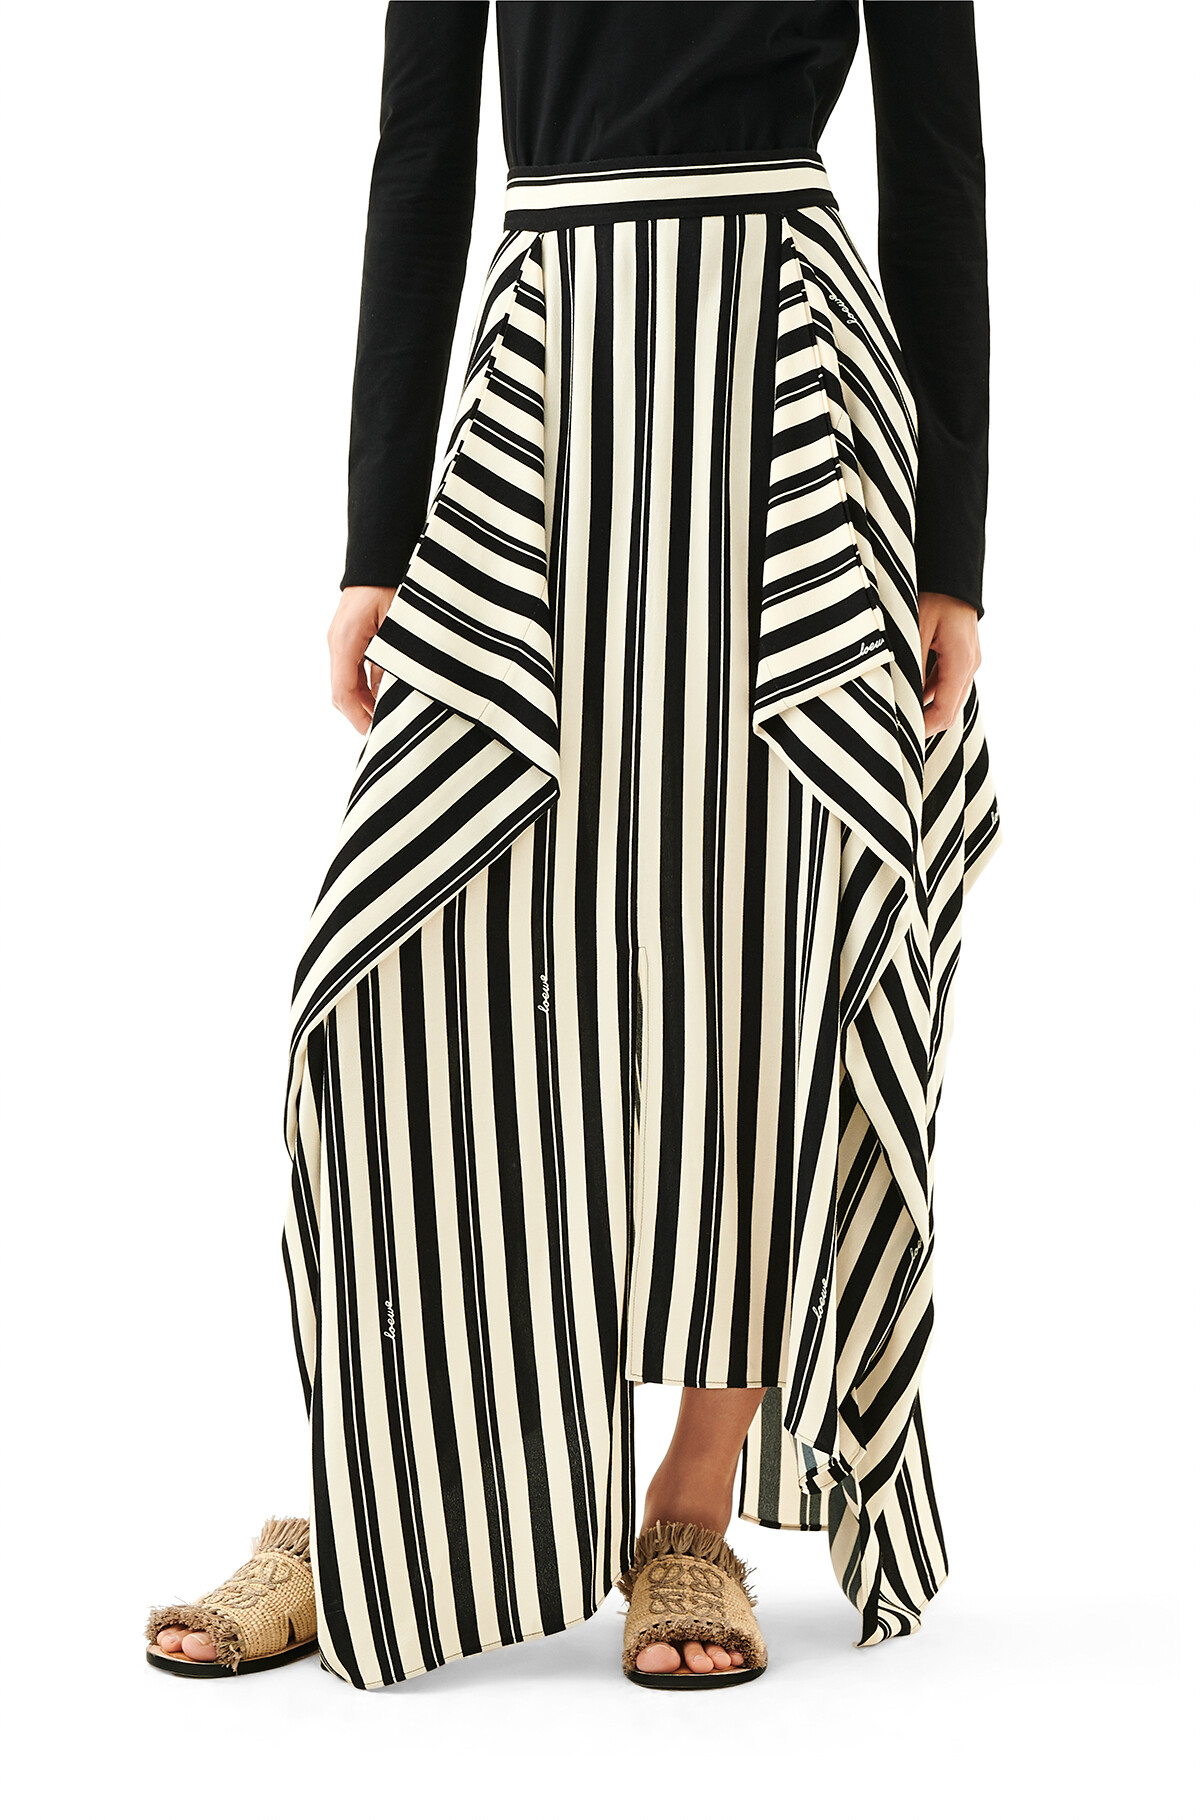 LOEWE Stripe Panel Skirt Ecru/Black front